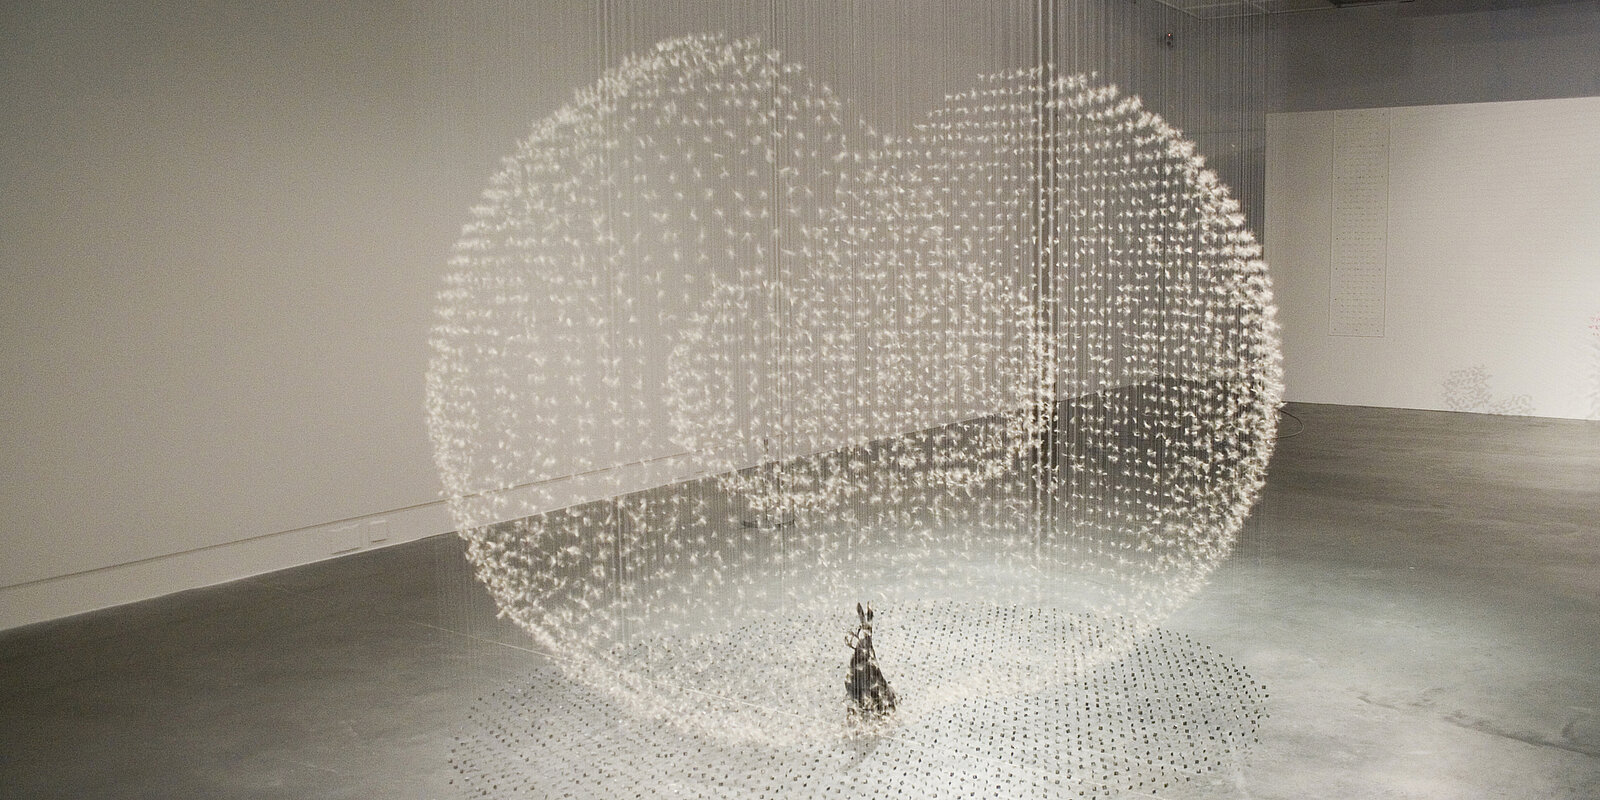 Installationsansicht Claire Morgan, Gone to Seed, 2011